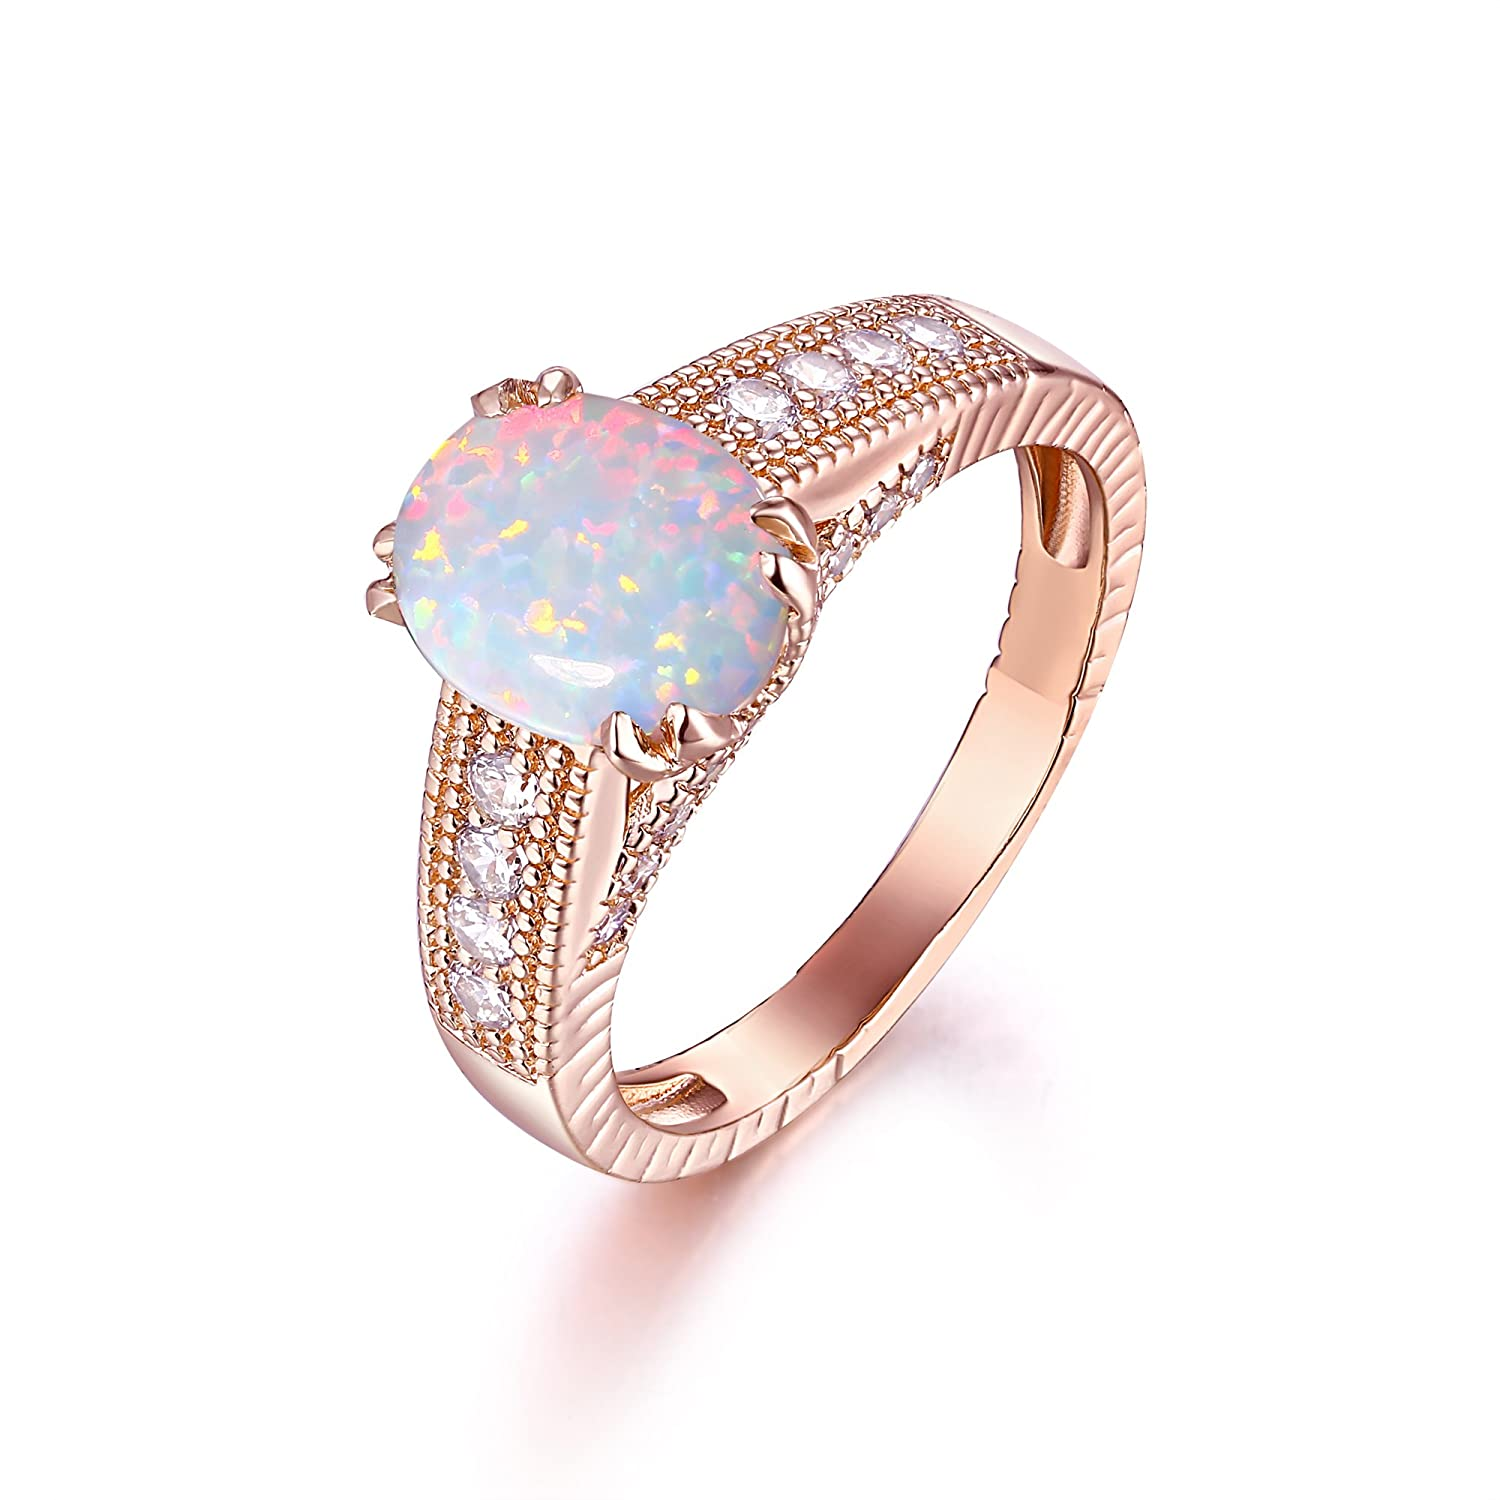 Jewelry & Watches 100% True Simulated Diamond 14k Rose Gold Triple Plated Family Tree Of Life Belly Ring Engagement & Wedding